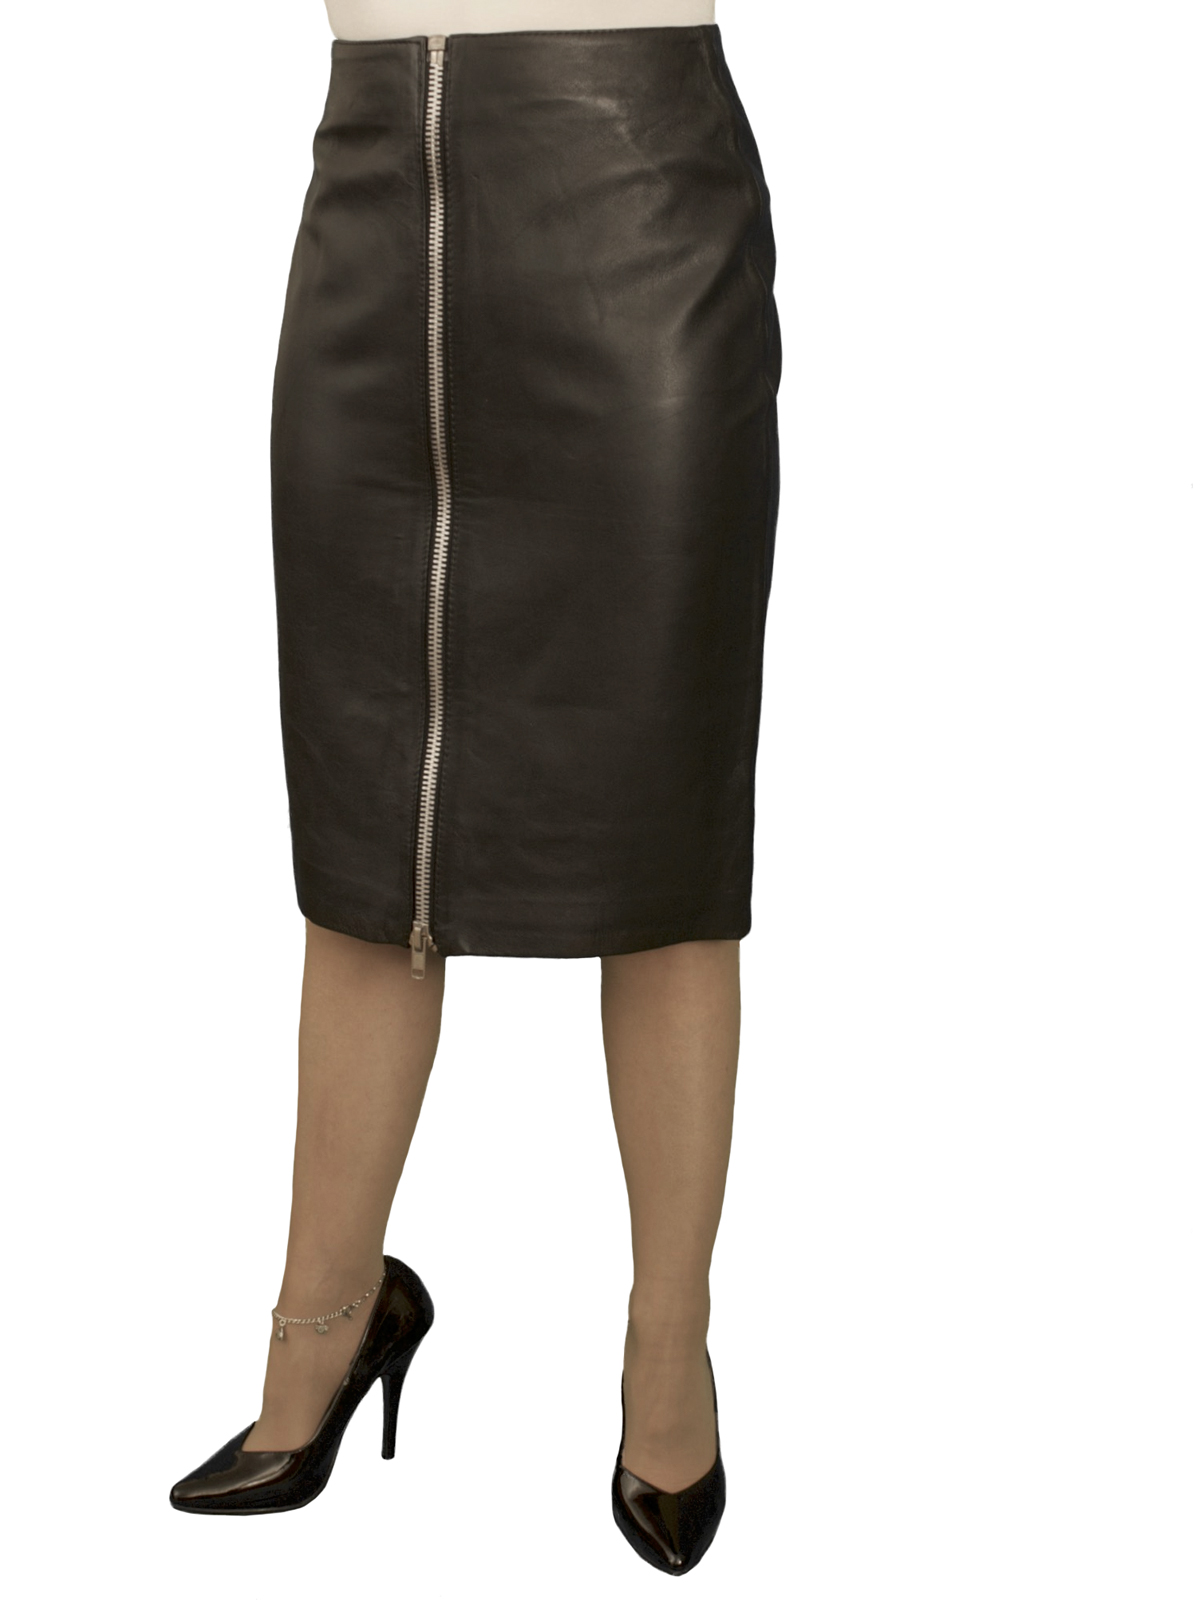 Black Luxury Leather Pencil Skirt with full front zip (knee length)